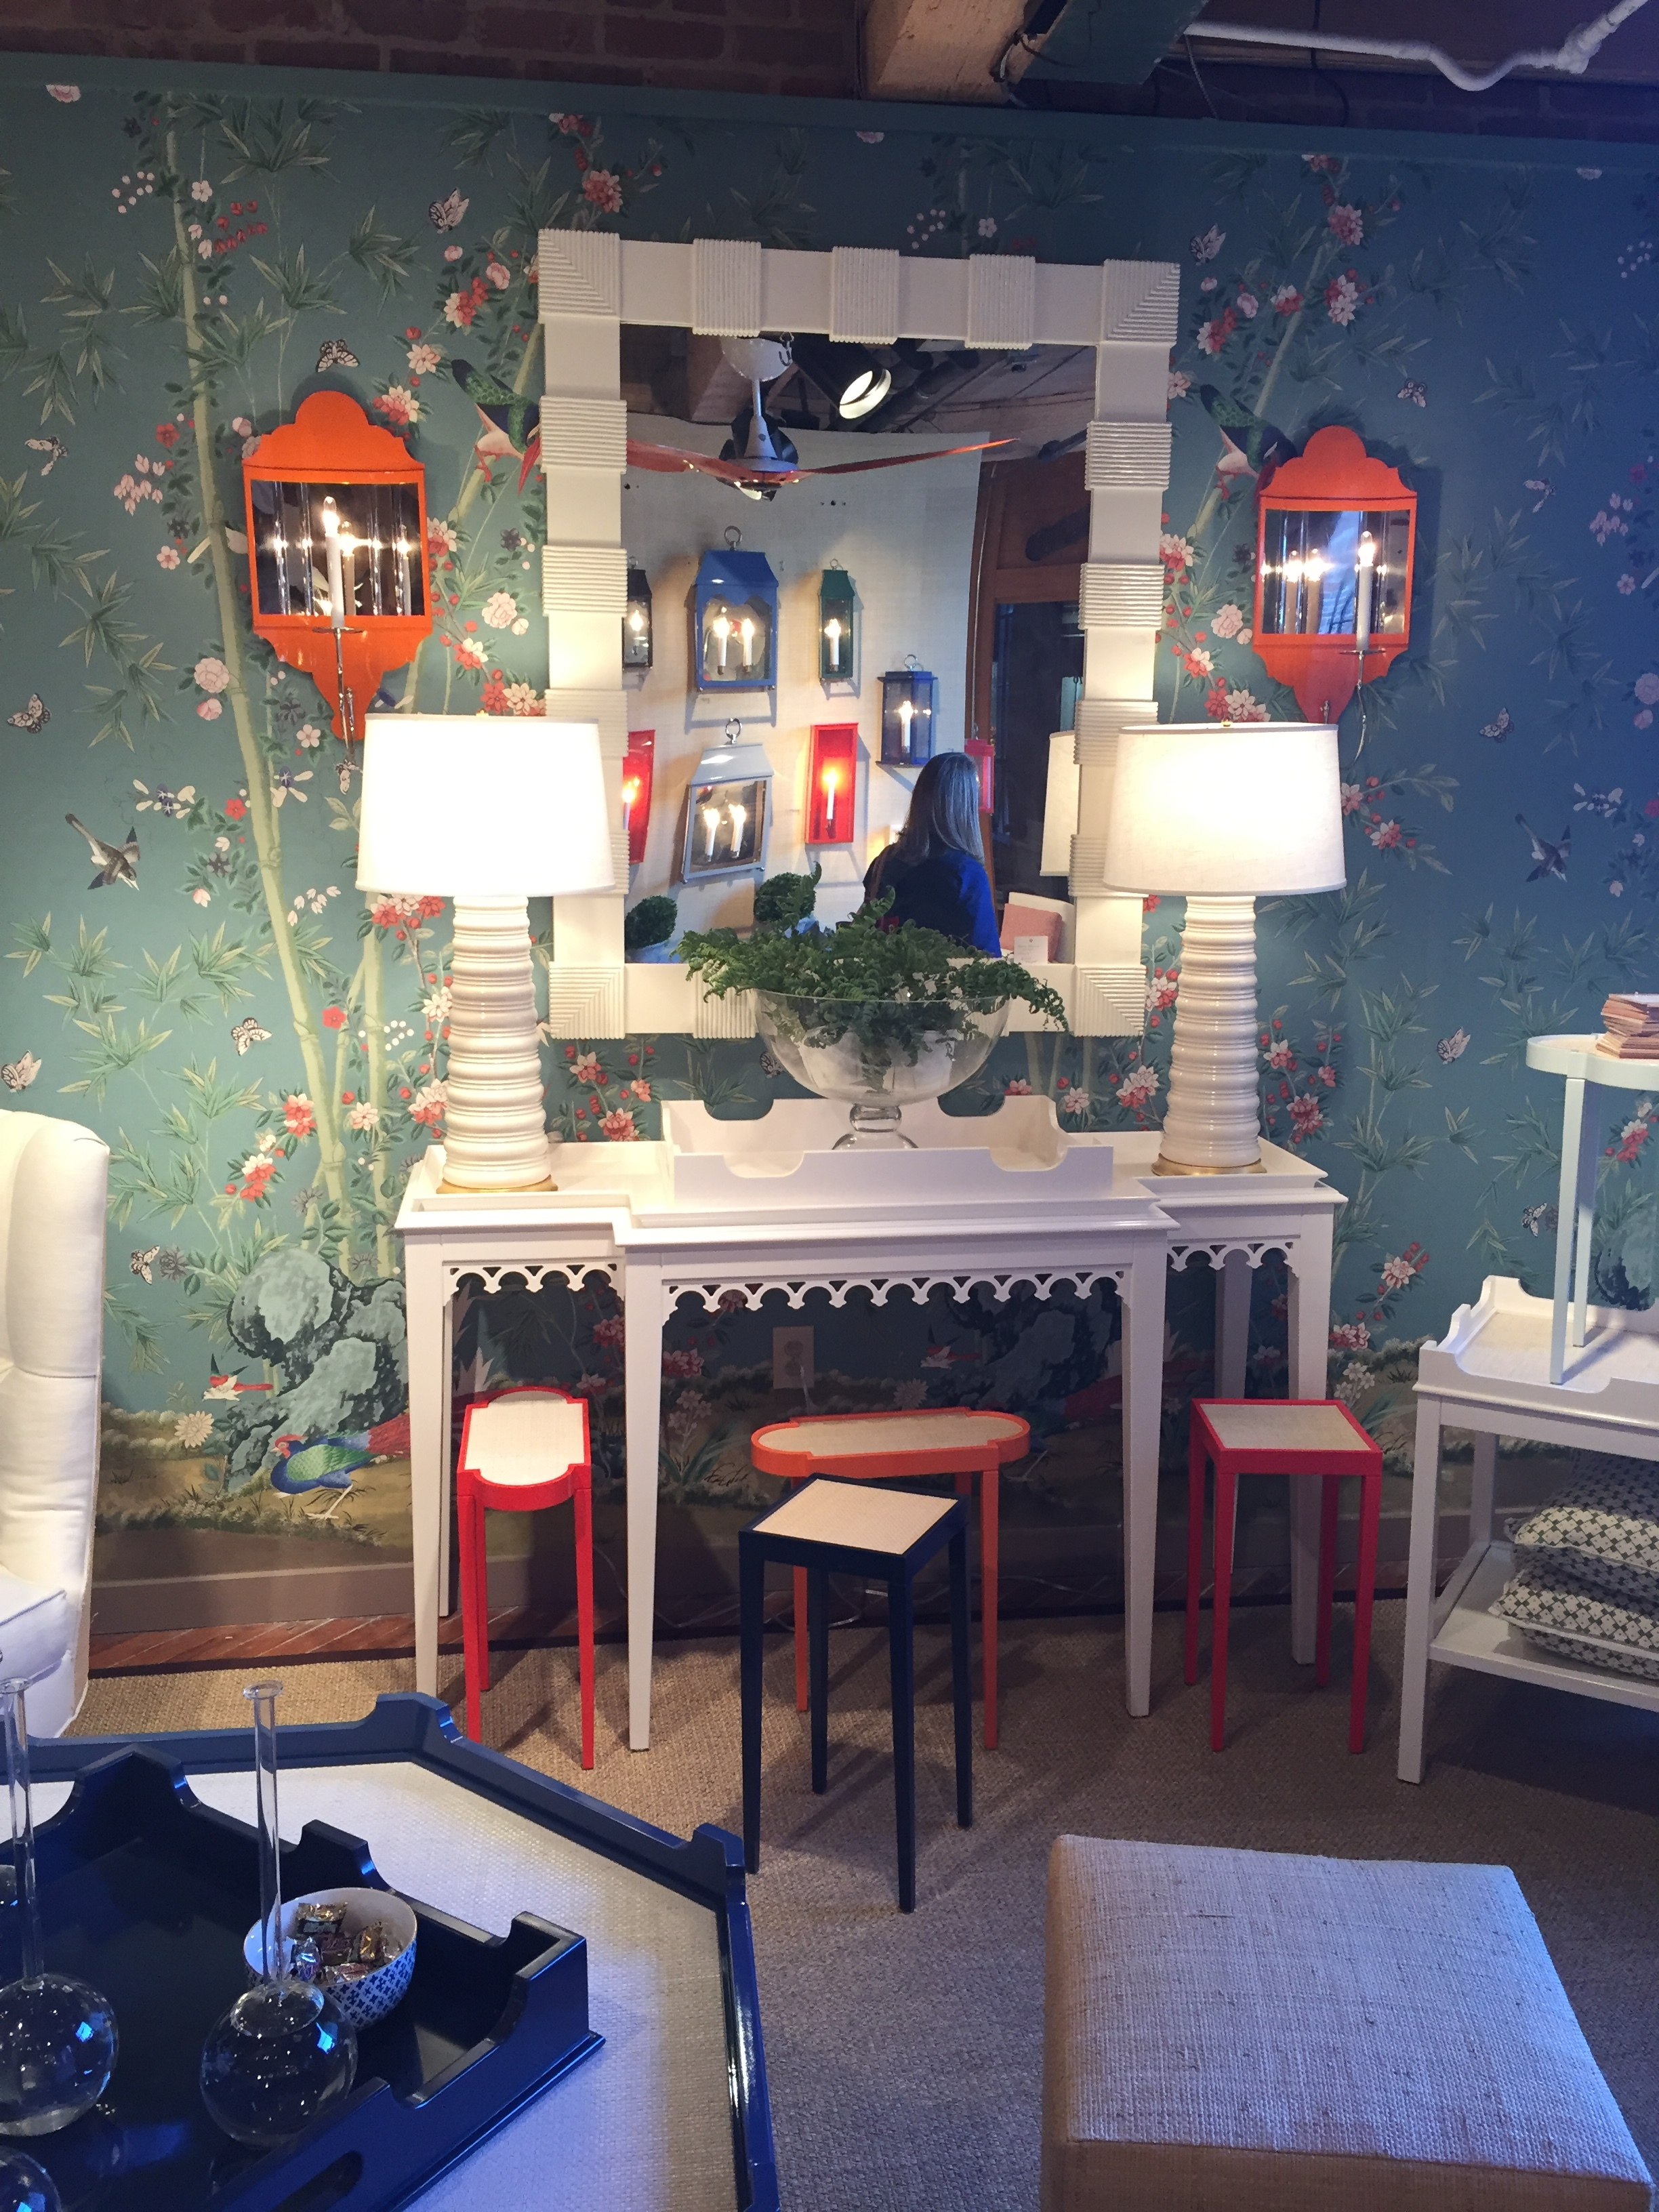 This showroom from oomph was my little treasured find. The chic designer furniture is unique. It mixes classic and modern design elements to create a look of its own. Perfection!